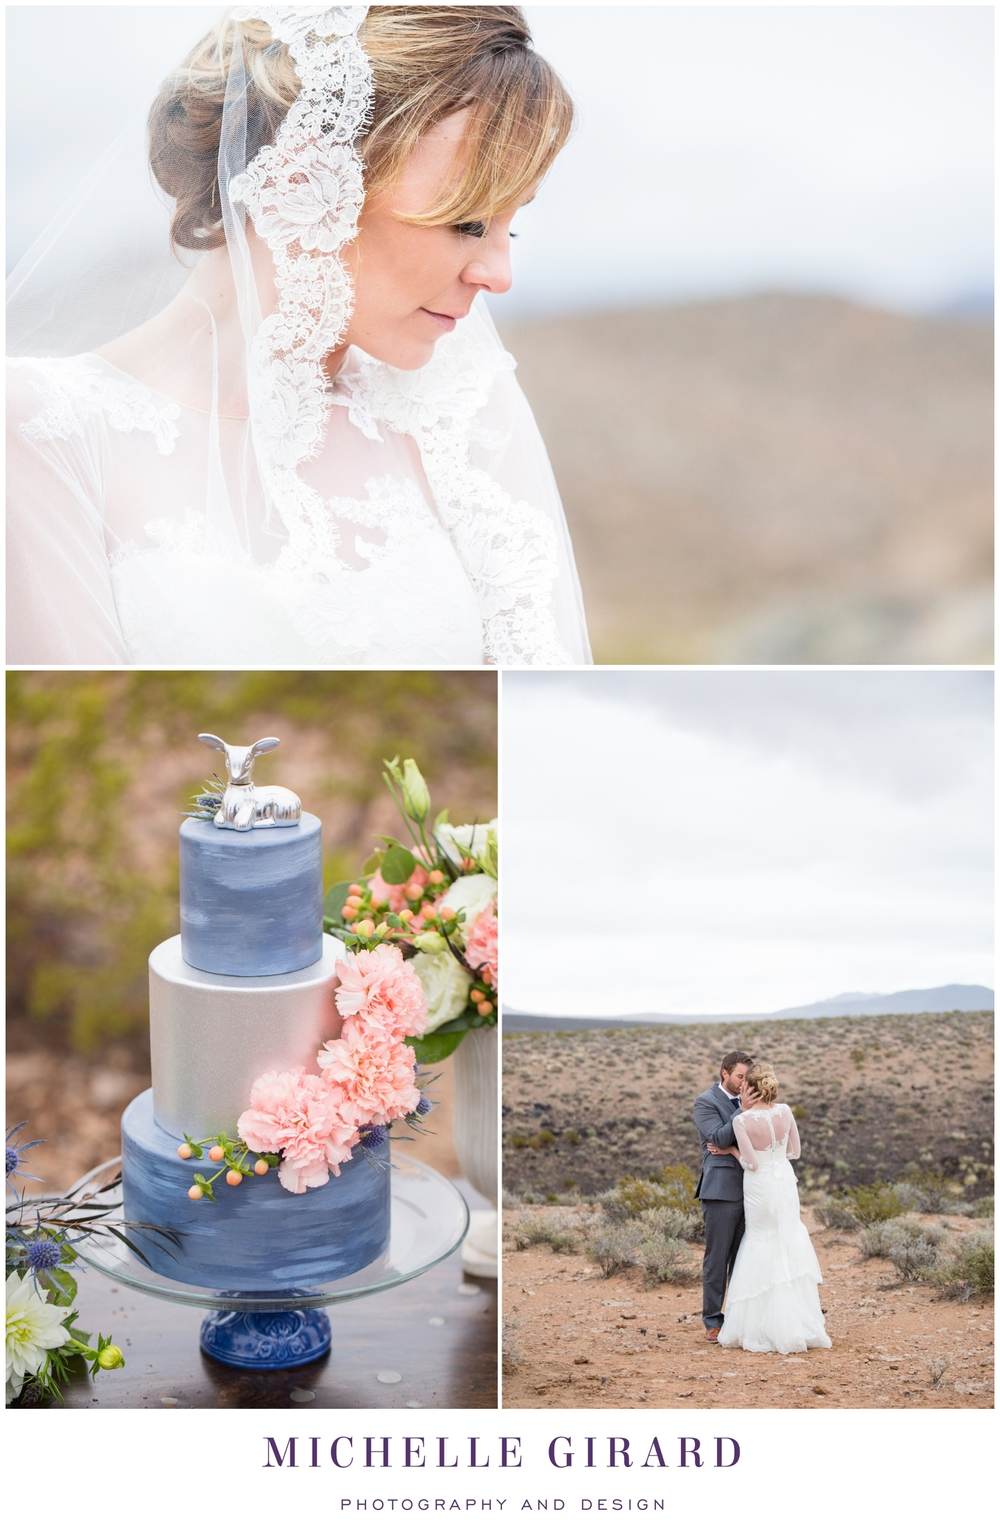 nevada-desert-lace-veil-michelle-girard-wedding-photography05.jpg